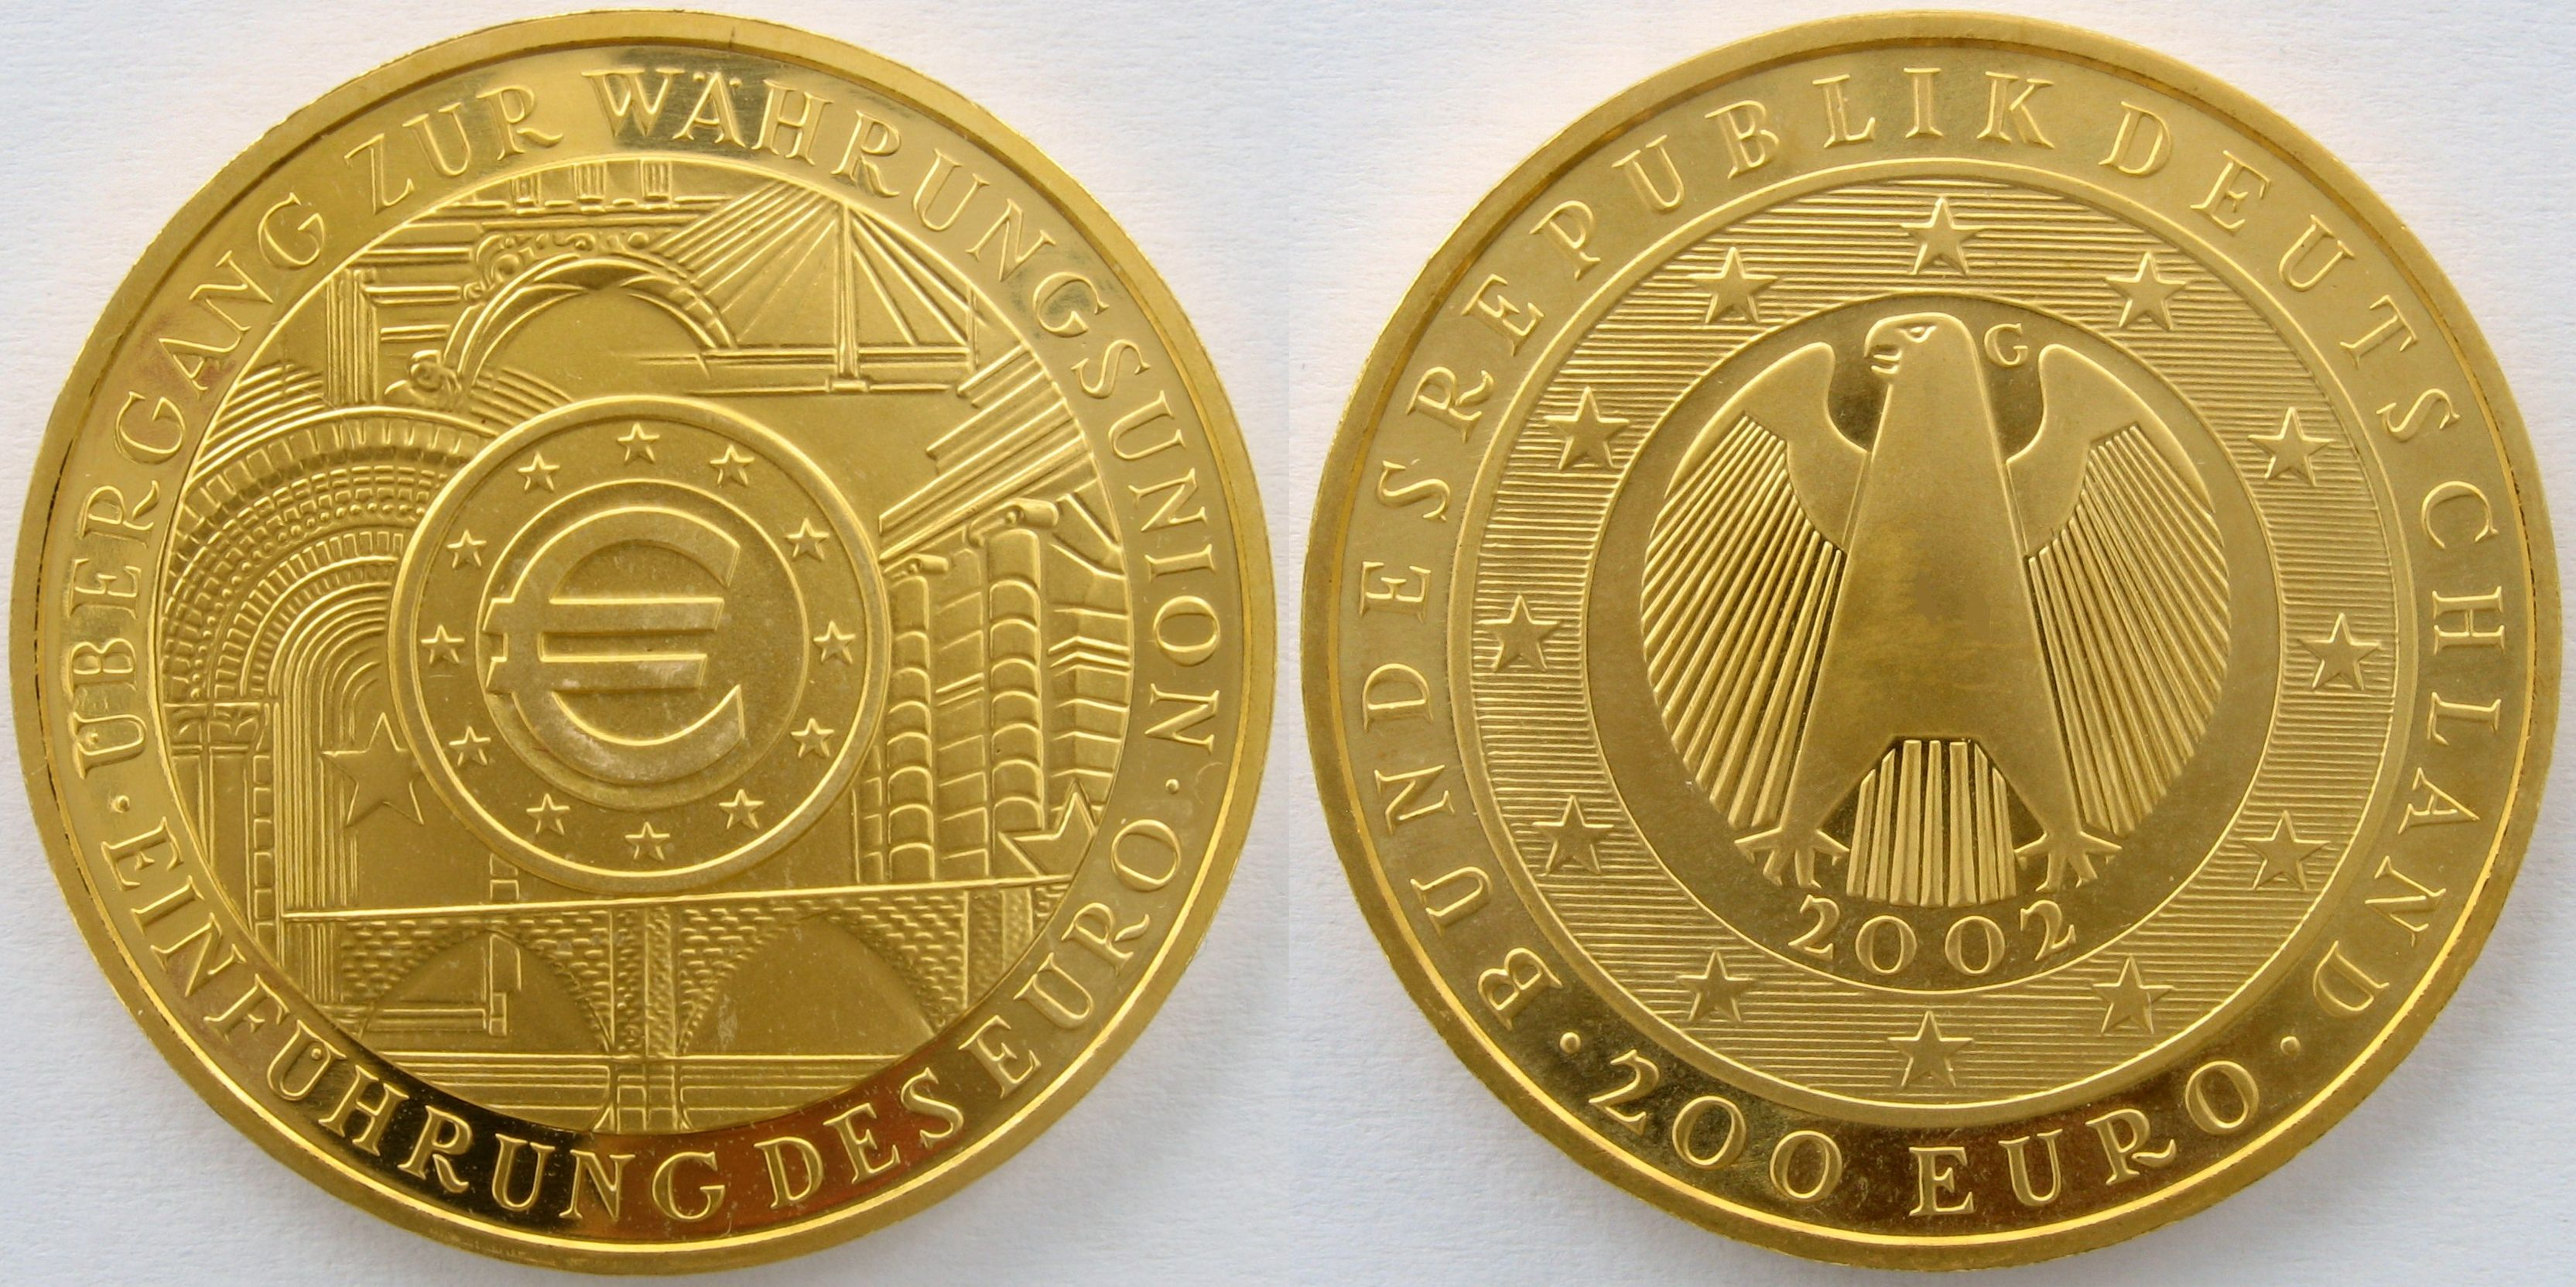 File:2002 200 euro deutschland.jpg - Wikimedia Commons